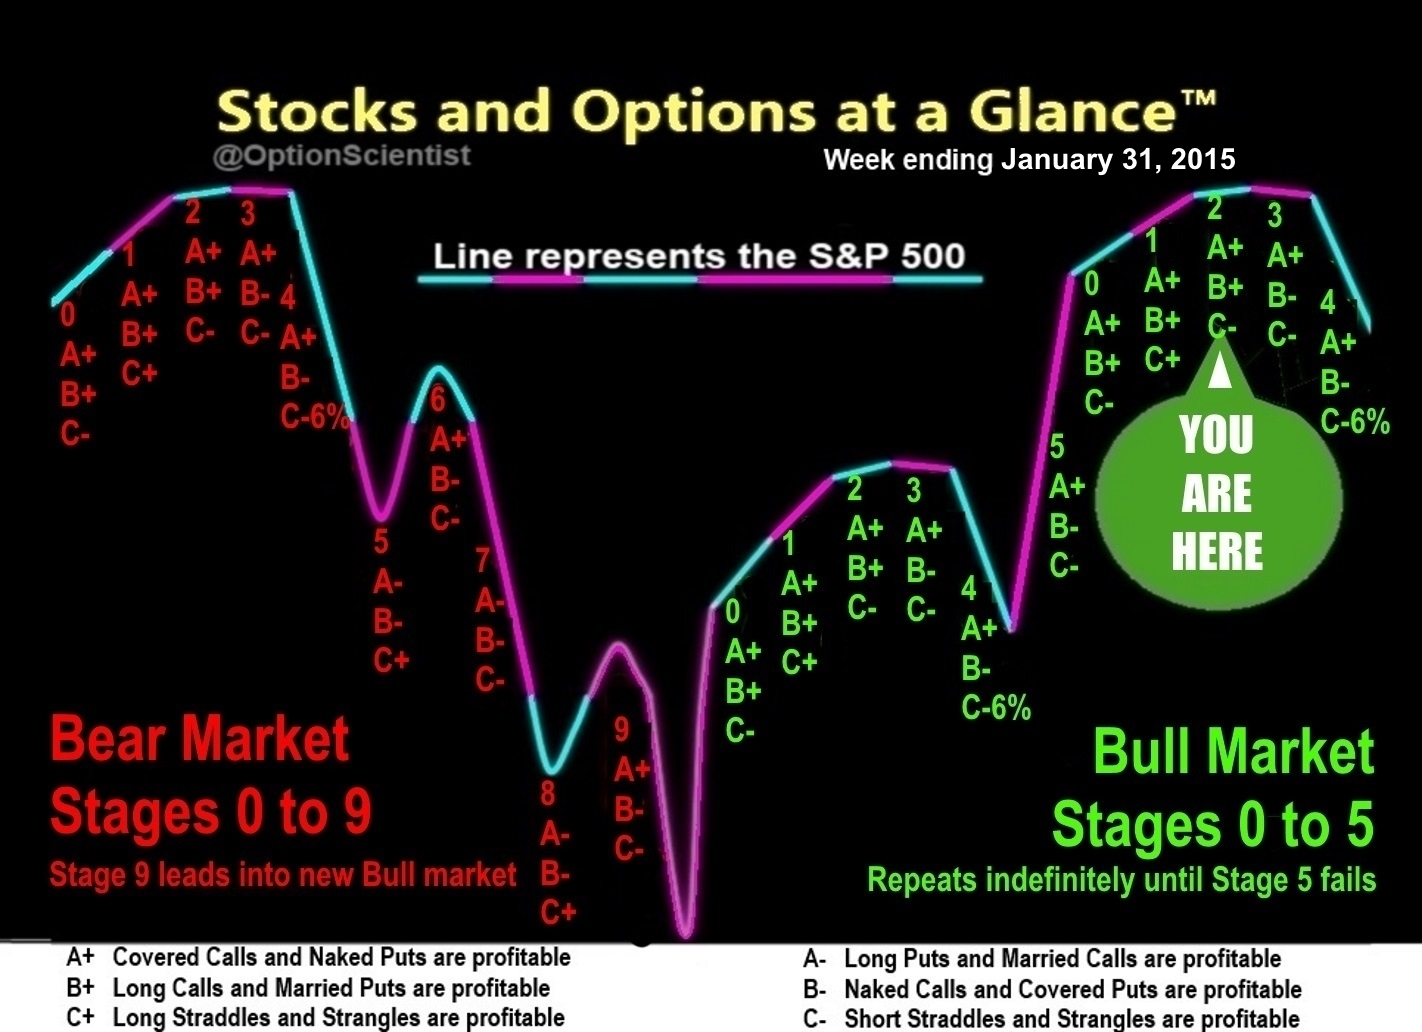 Stocks and Options at a Glance 01-31-15